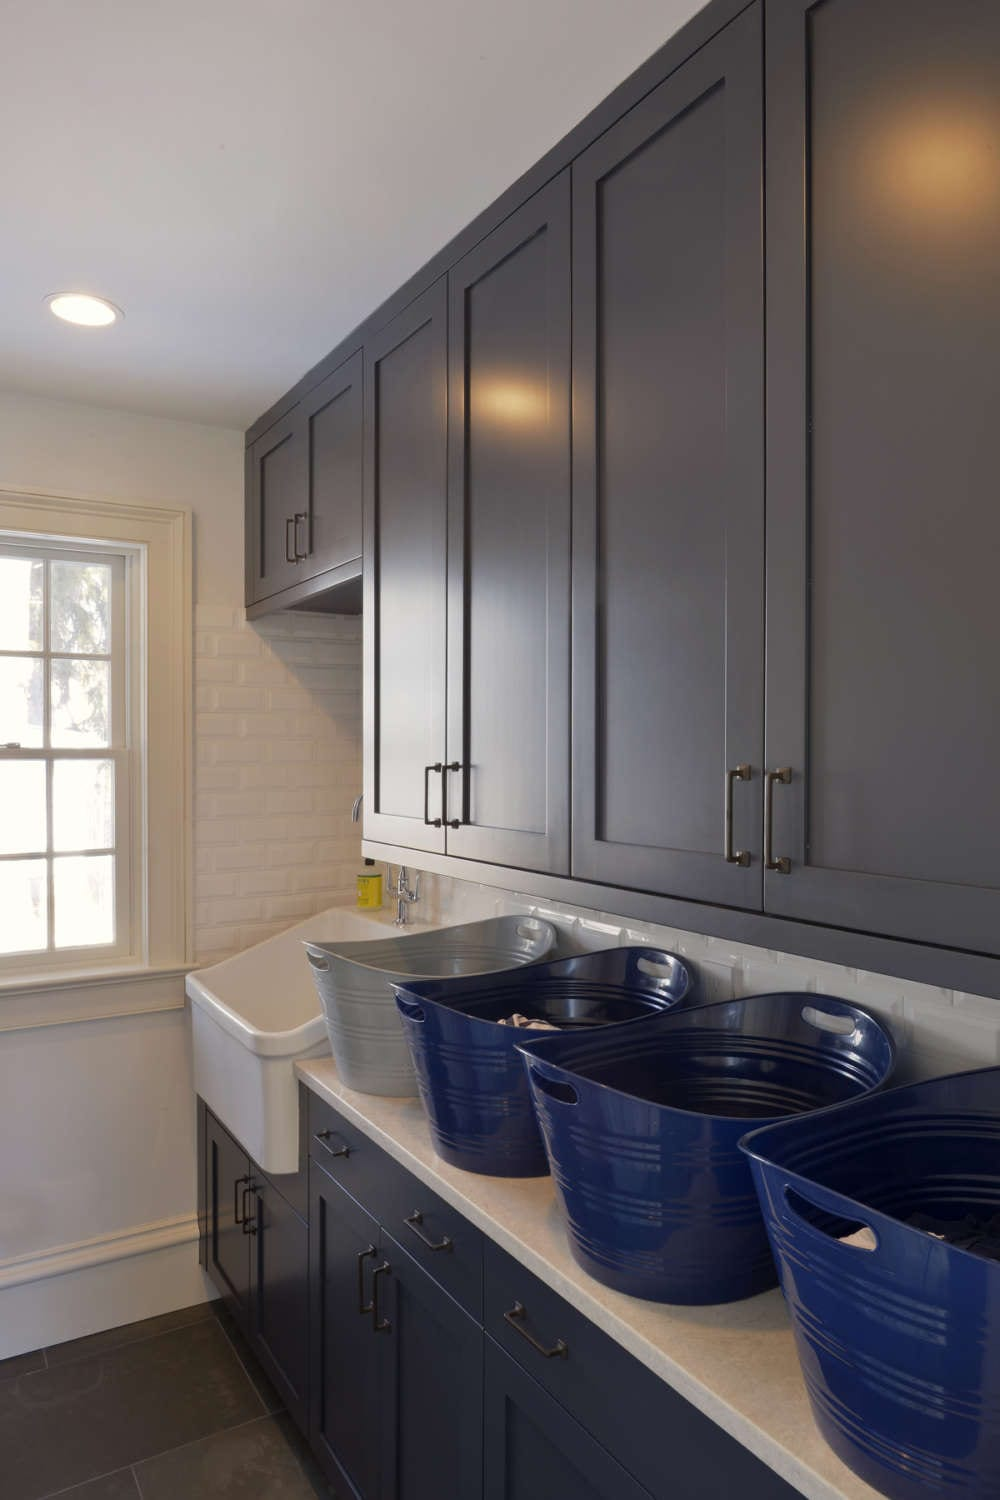 White tiled laundry room features dark blue painted shaker style, frameless Bilotta cabinetry with brushed stainless hardware, white quartz countertop and a large white laundry sink. Design by Paulette Gambacorta of Bilotta Kitchens.